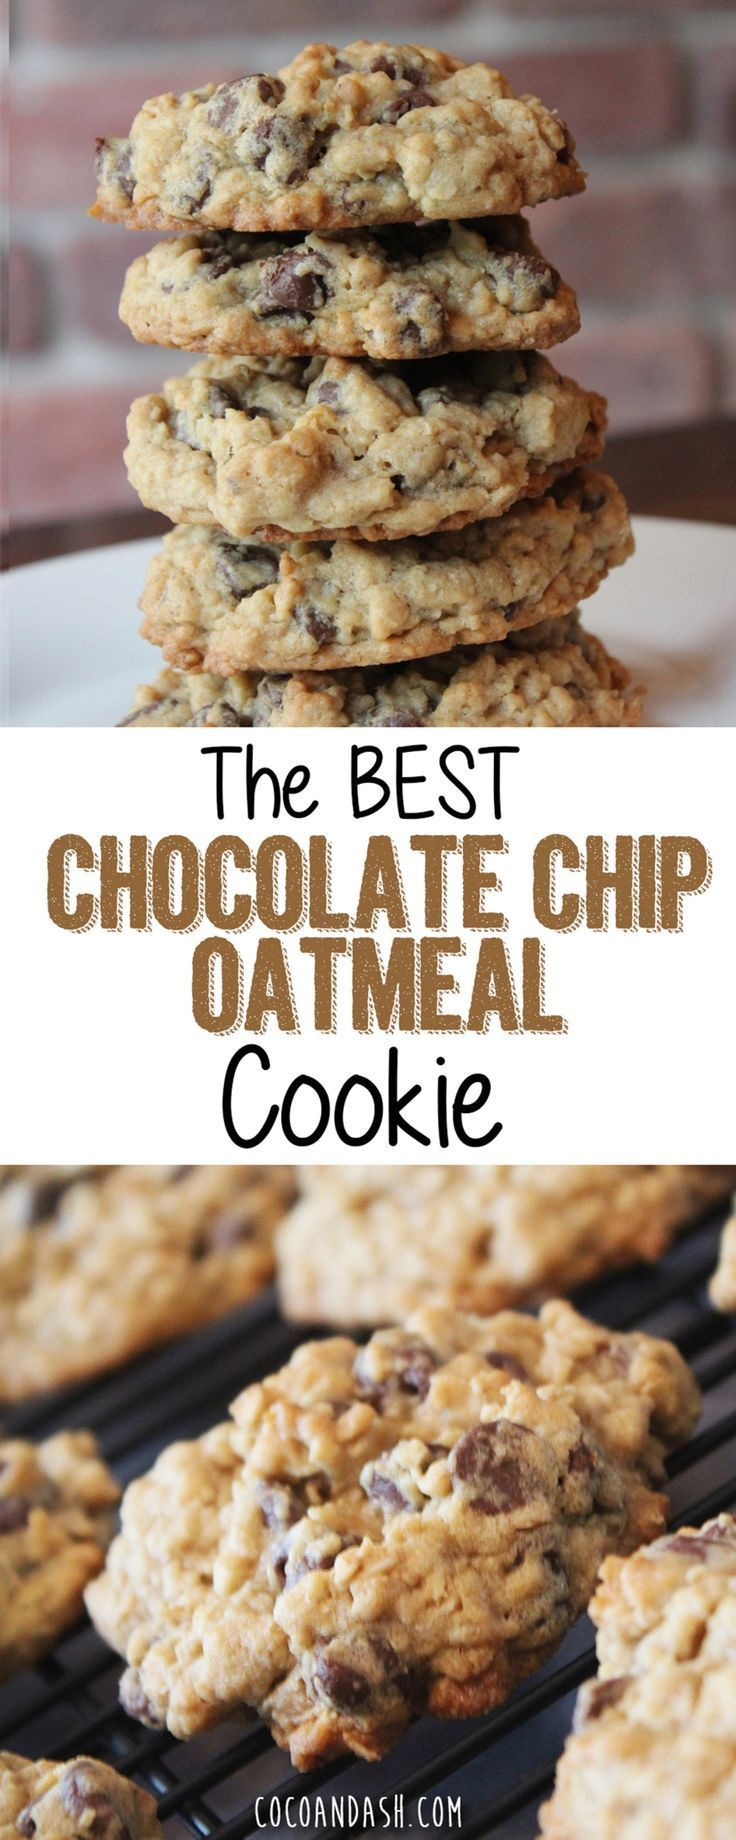 These chocolate chip oatmeal cookies are THE BEST chocolate chip cookes you will ever eat So soft and chewy